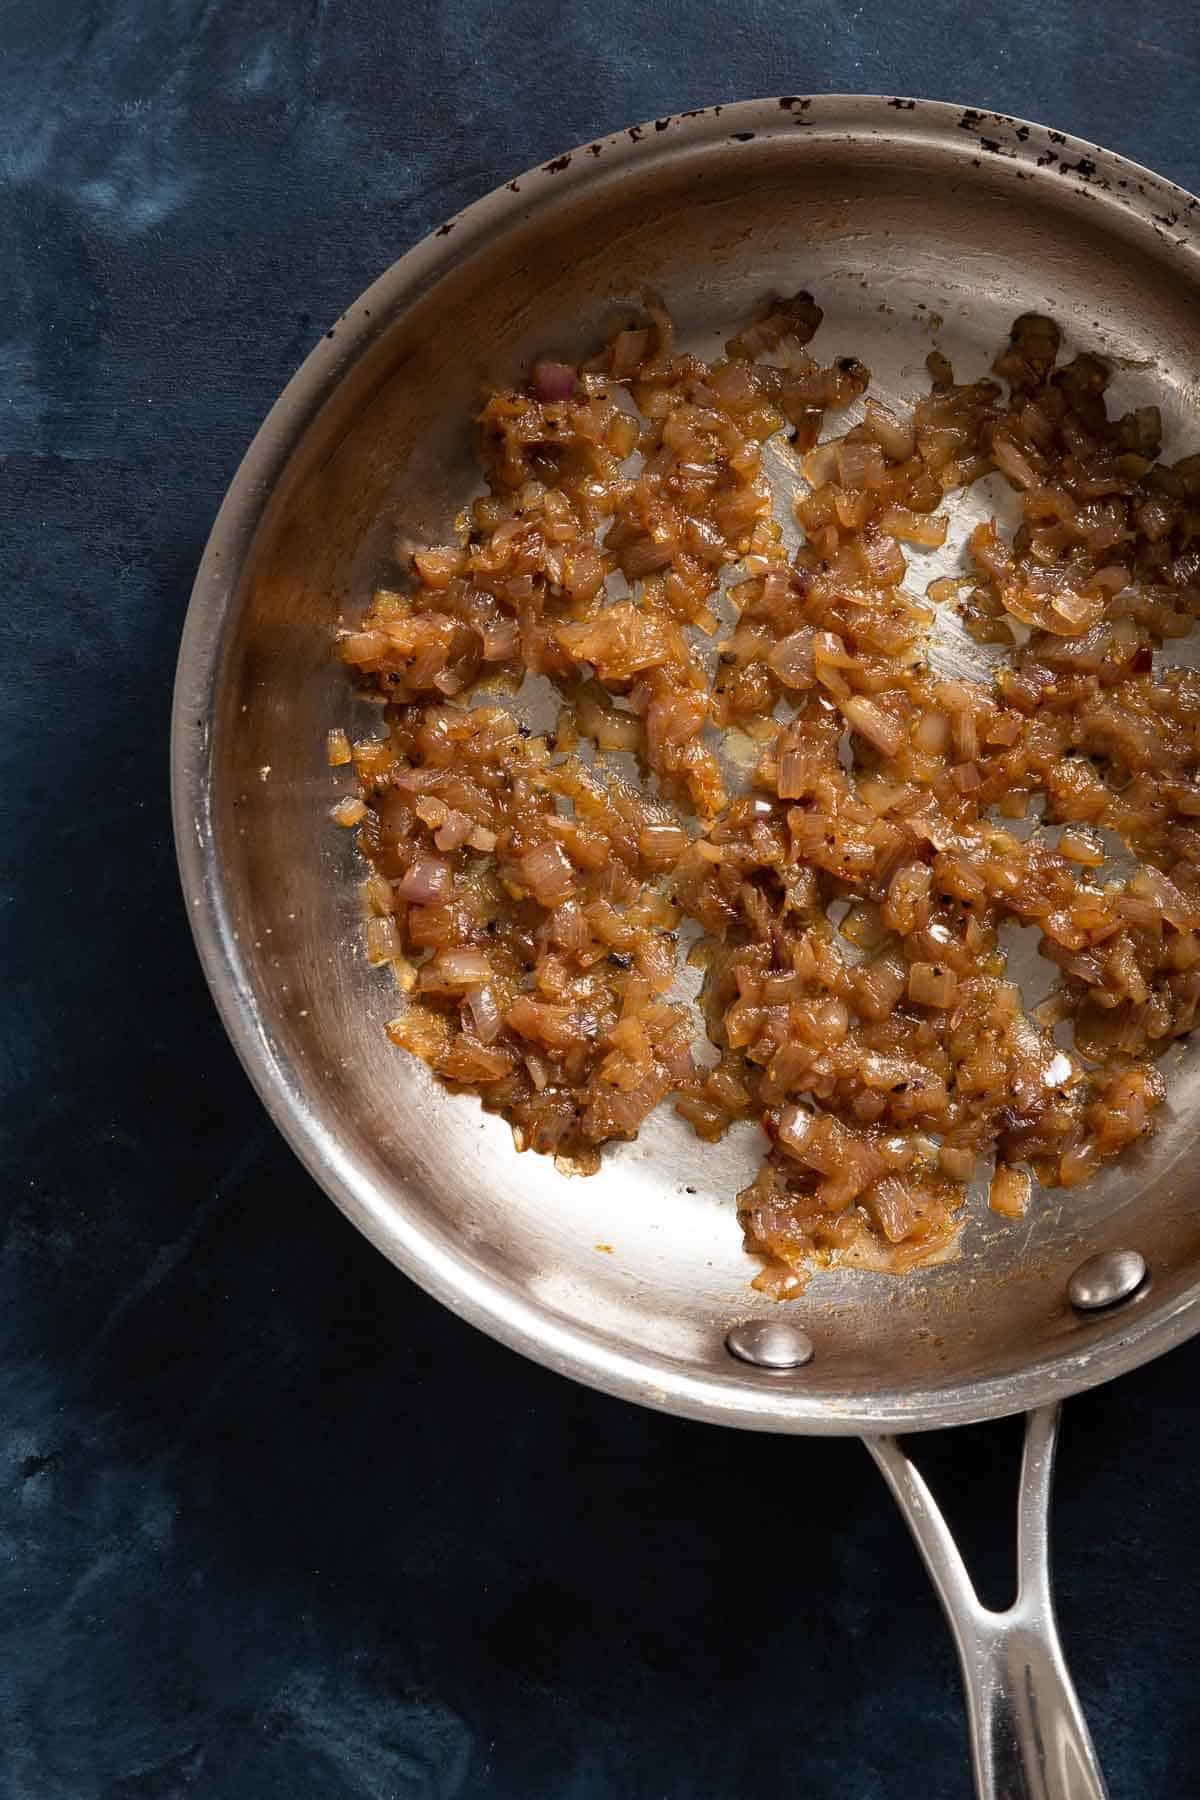 Chopped golden brown shallots sauteing in a metal skillet